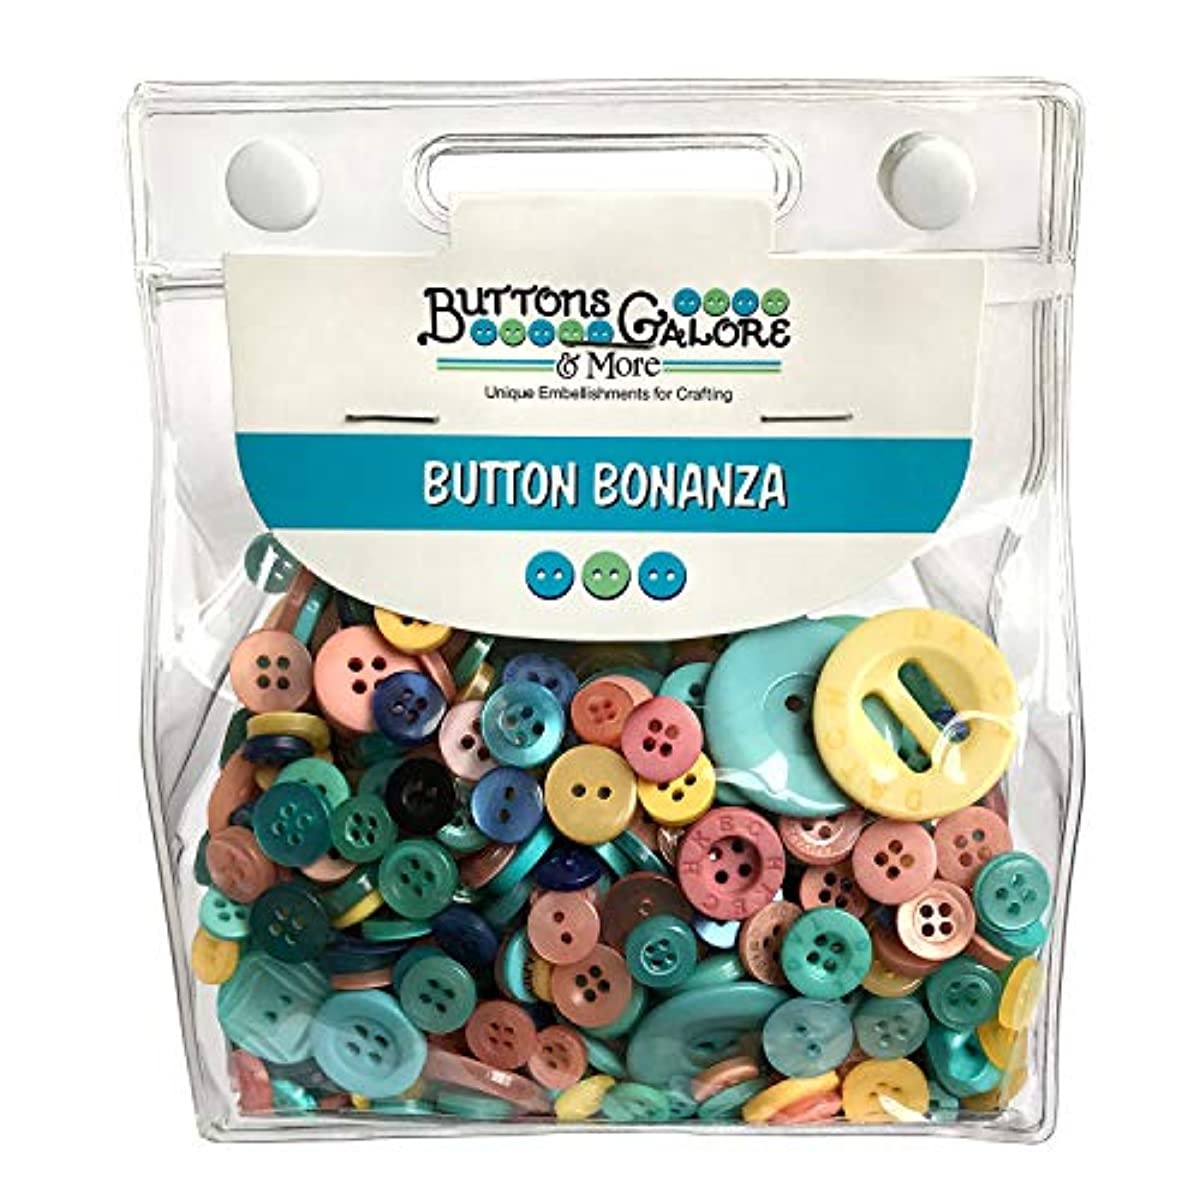 Buttons Galore BB95 Glam Girl